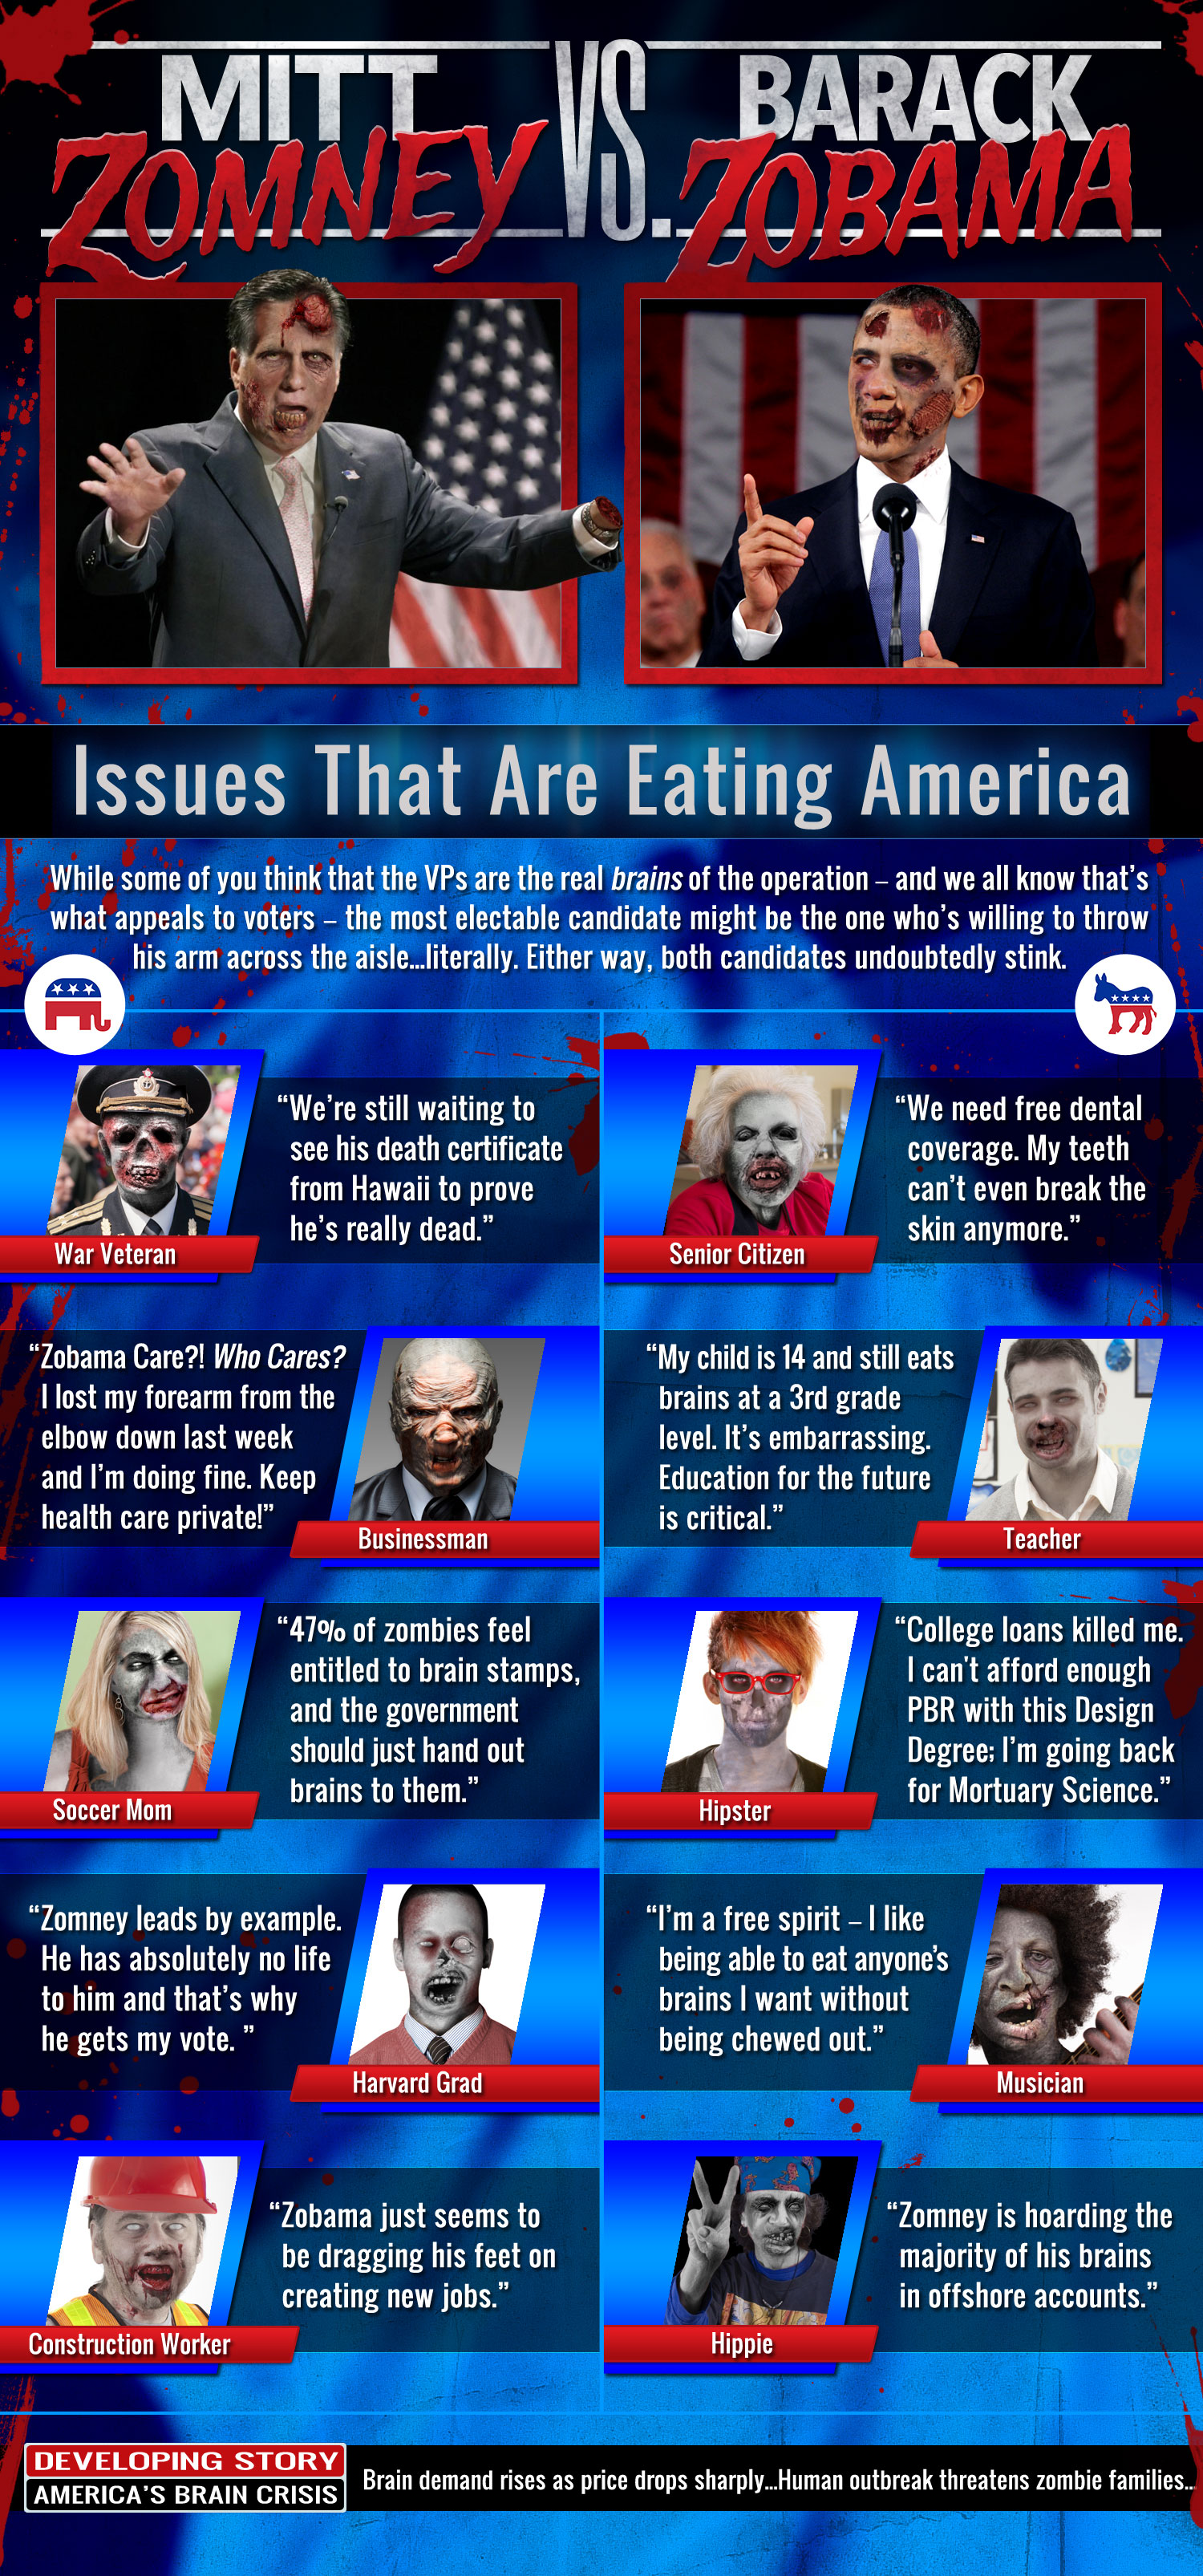 HalloweenCostumes.com: Issues That Are Eating America